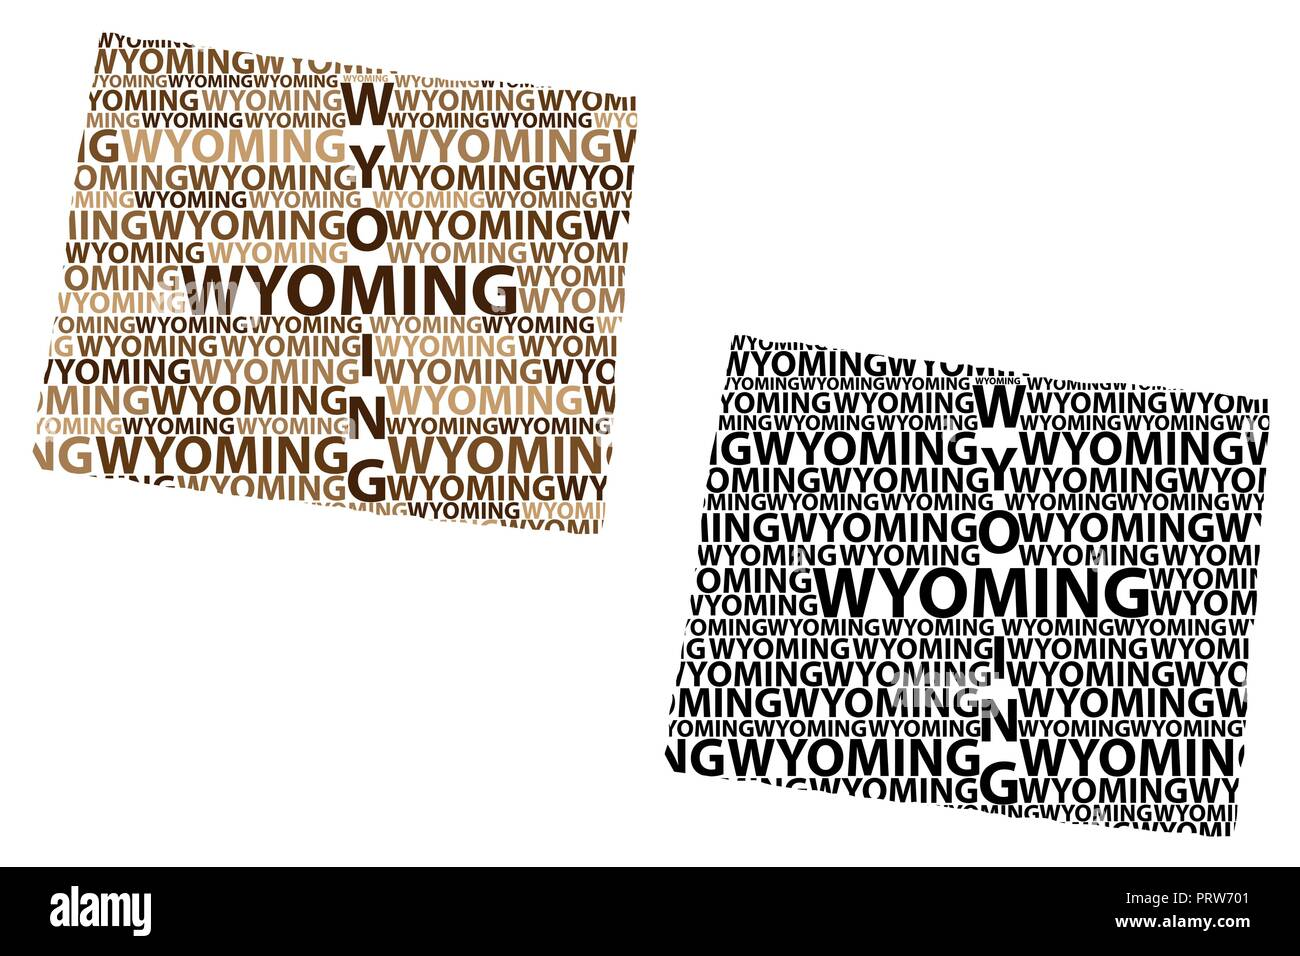 Sketch Wyoming (United States of America) letter text map, Wyoming